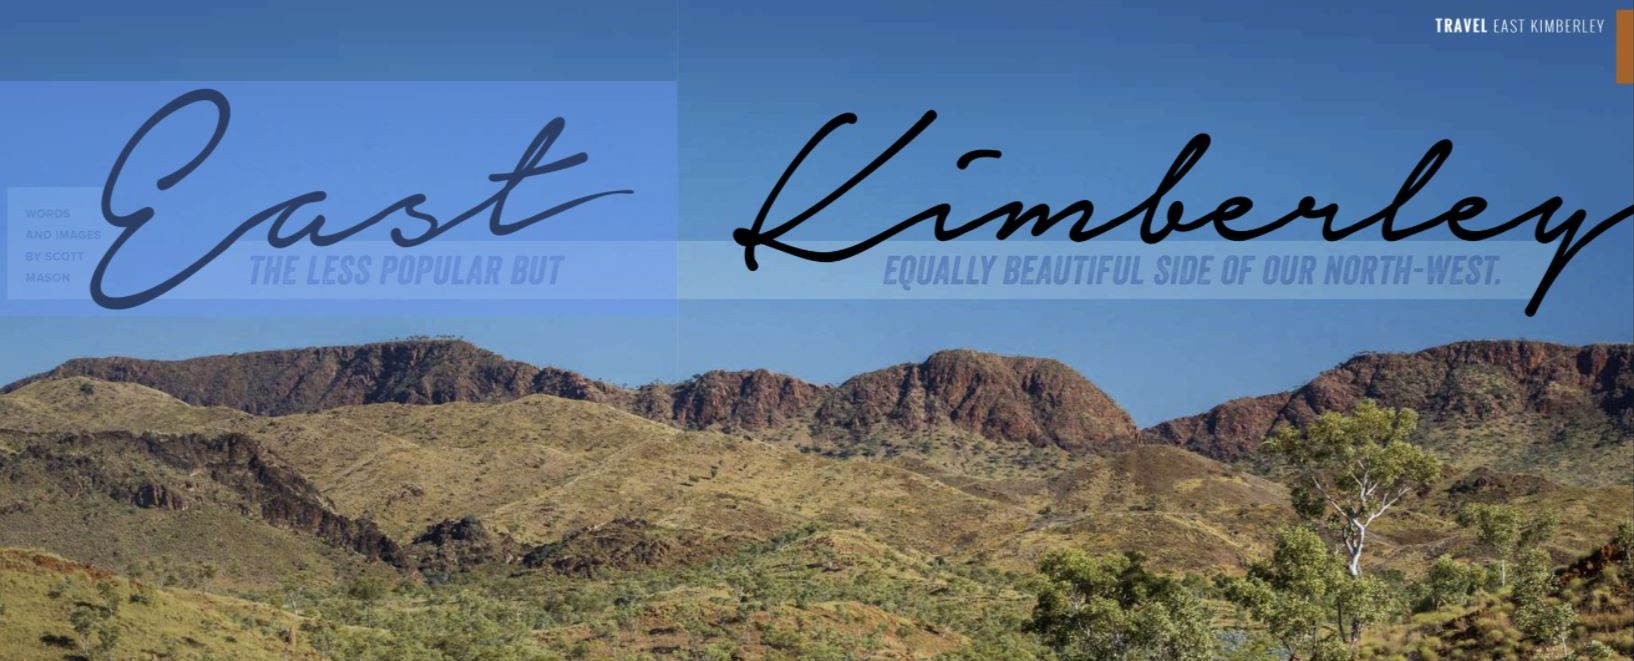 East Kimberley: Issue 30 Travel